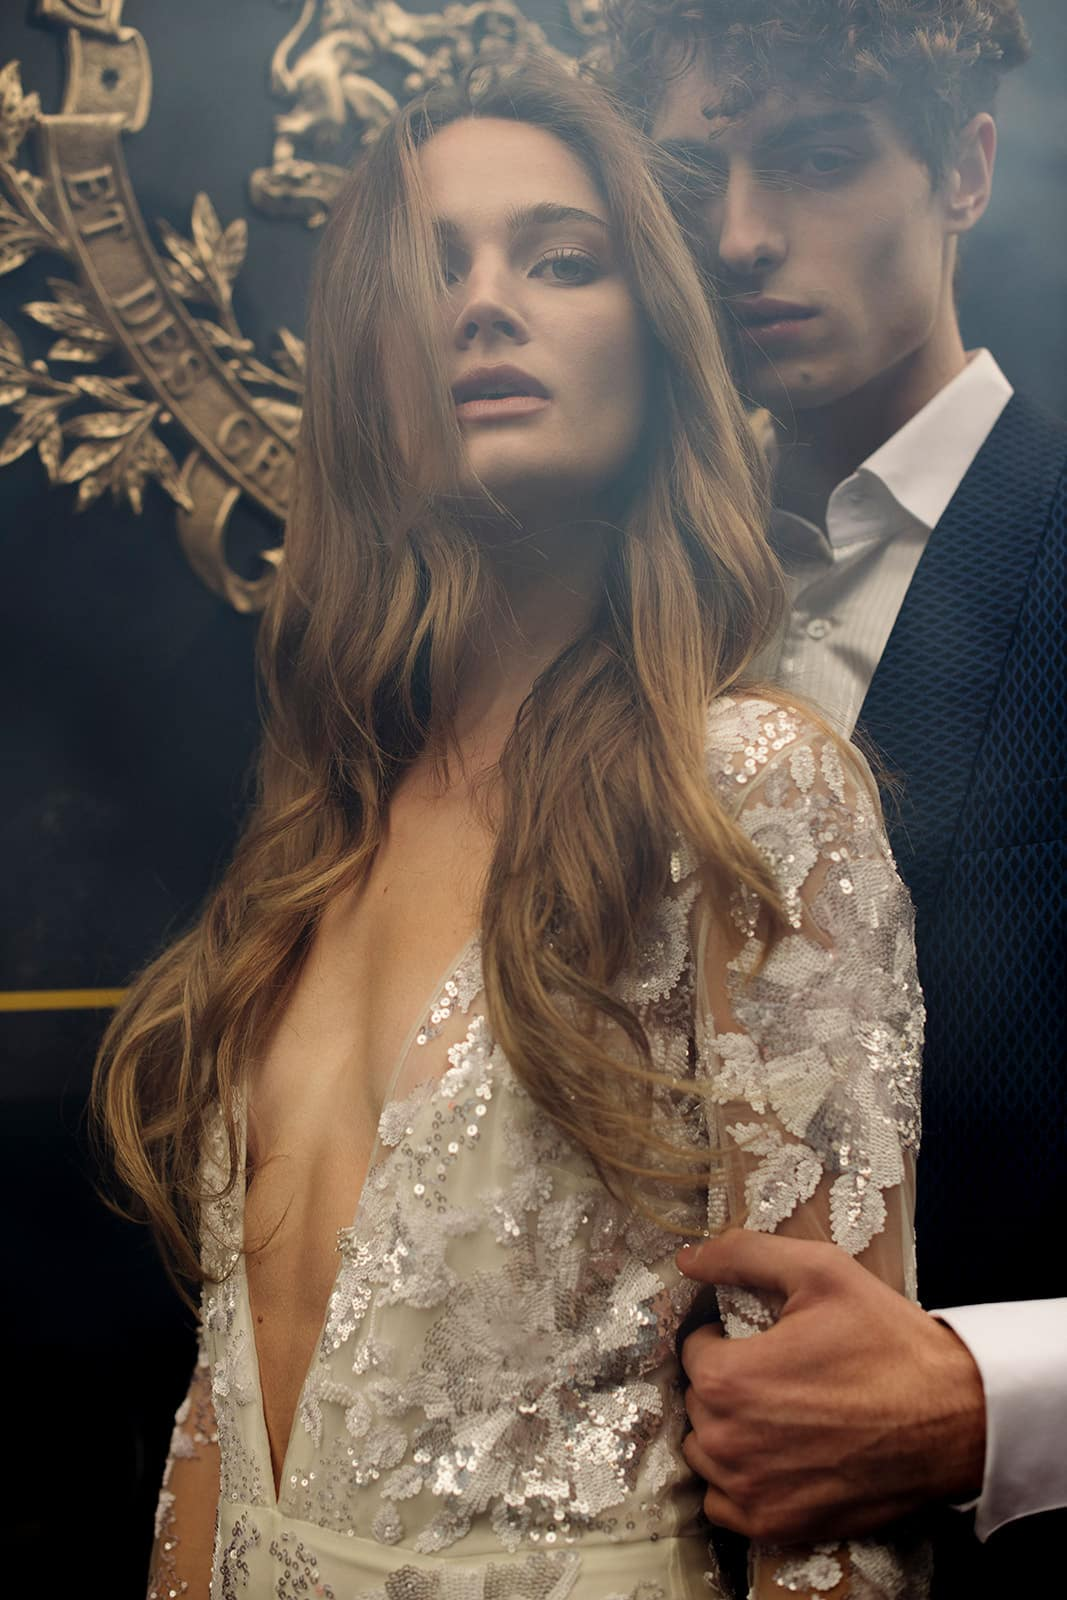 Orient Express Exclusive Wedding shooting editorial - Atout Coeur Wedding wedding planners